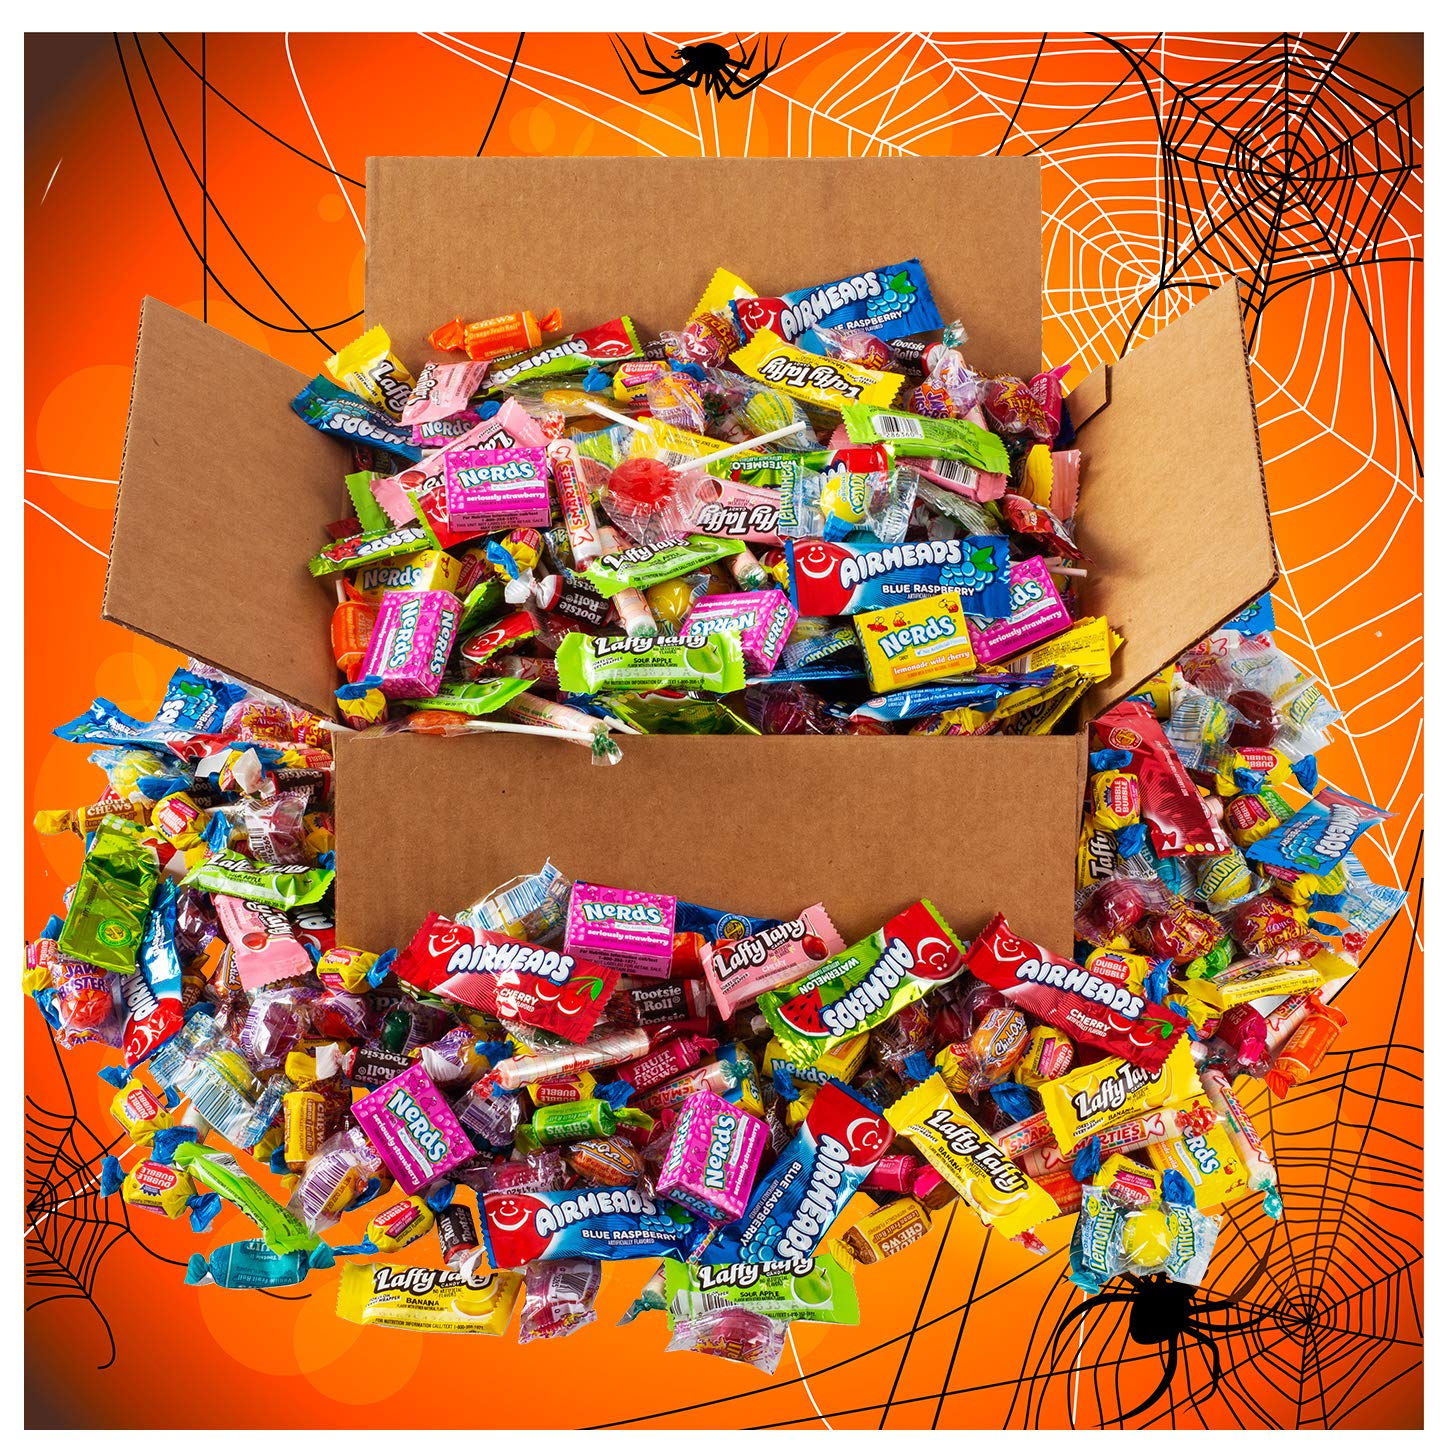 HUGE Halloween Candy Assortment Party Mix - 6.5 Pounds - OVER 350 Pieces of Individually Wrapped Candy - Trick or Treat Candy by A Great Surprise